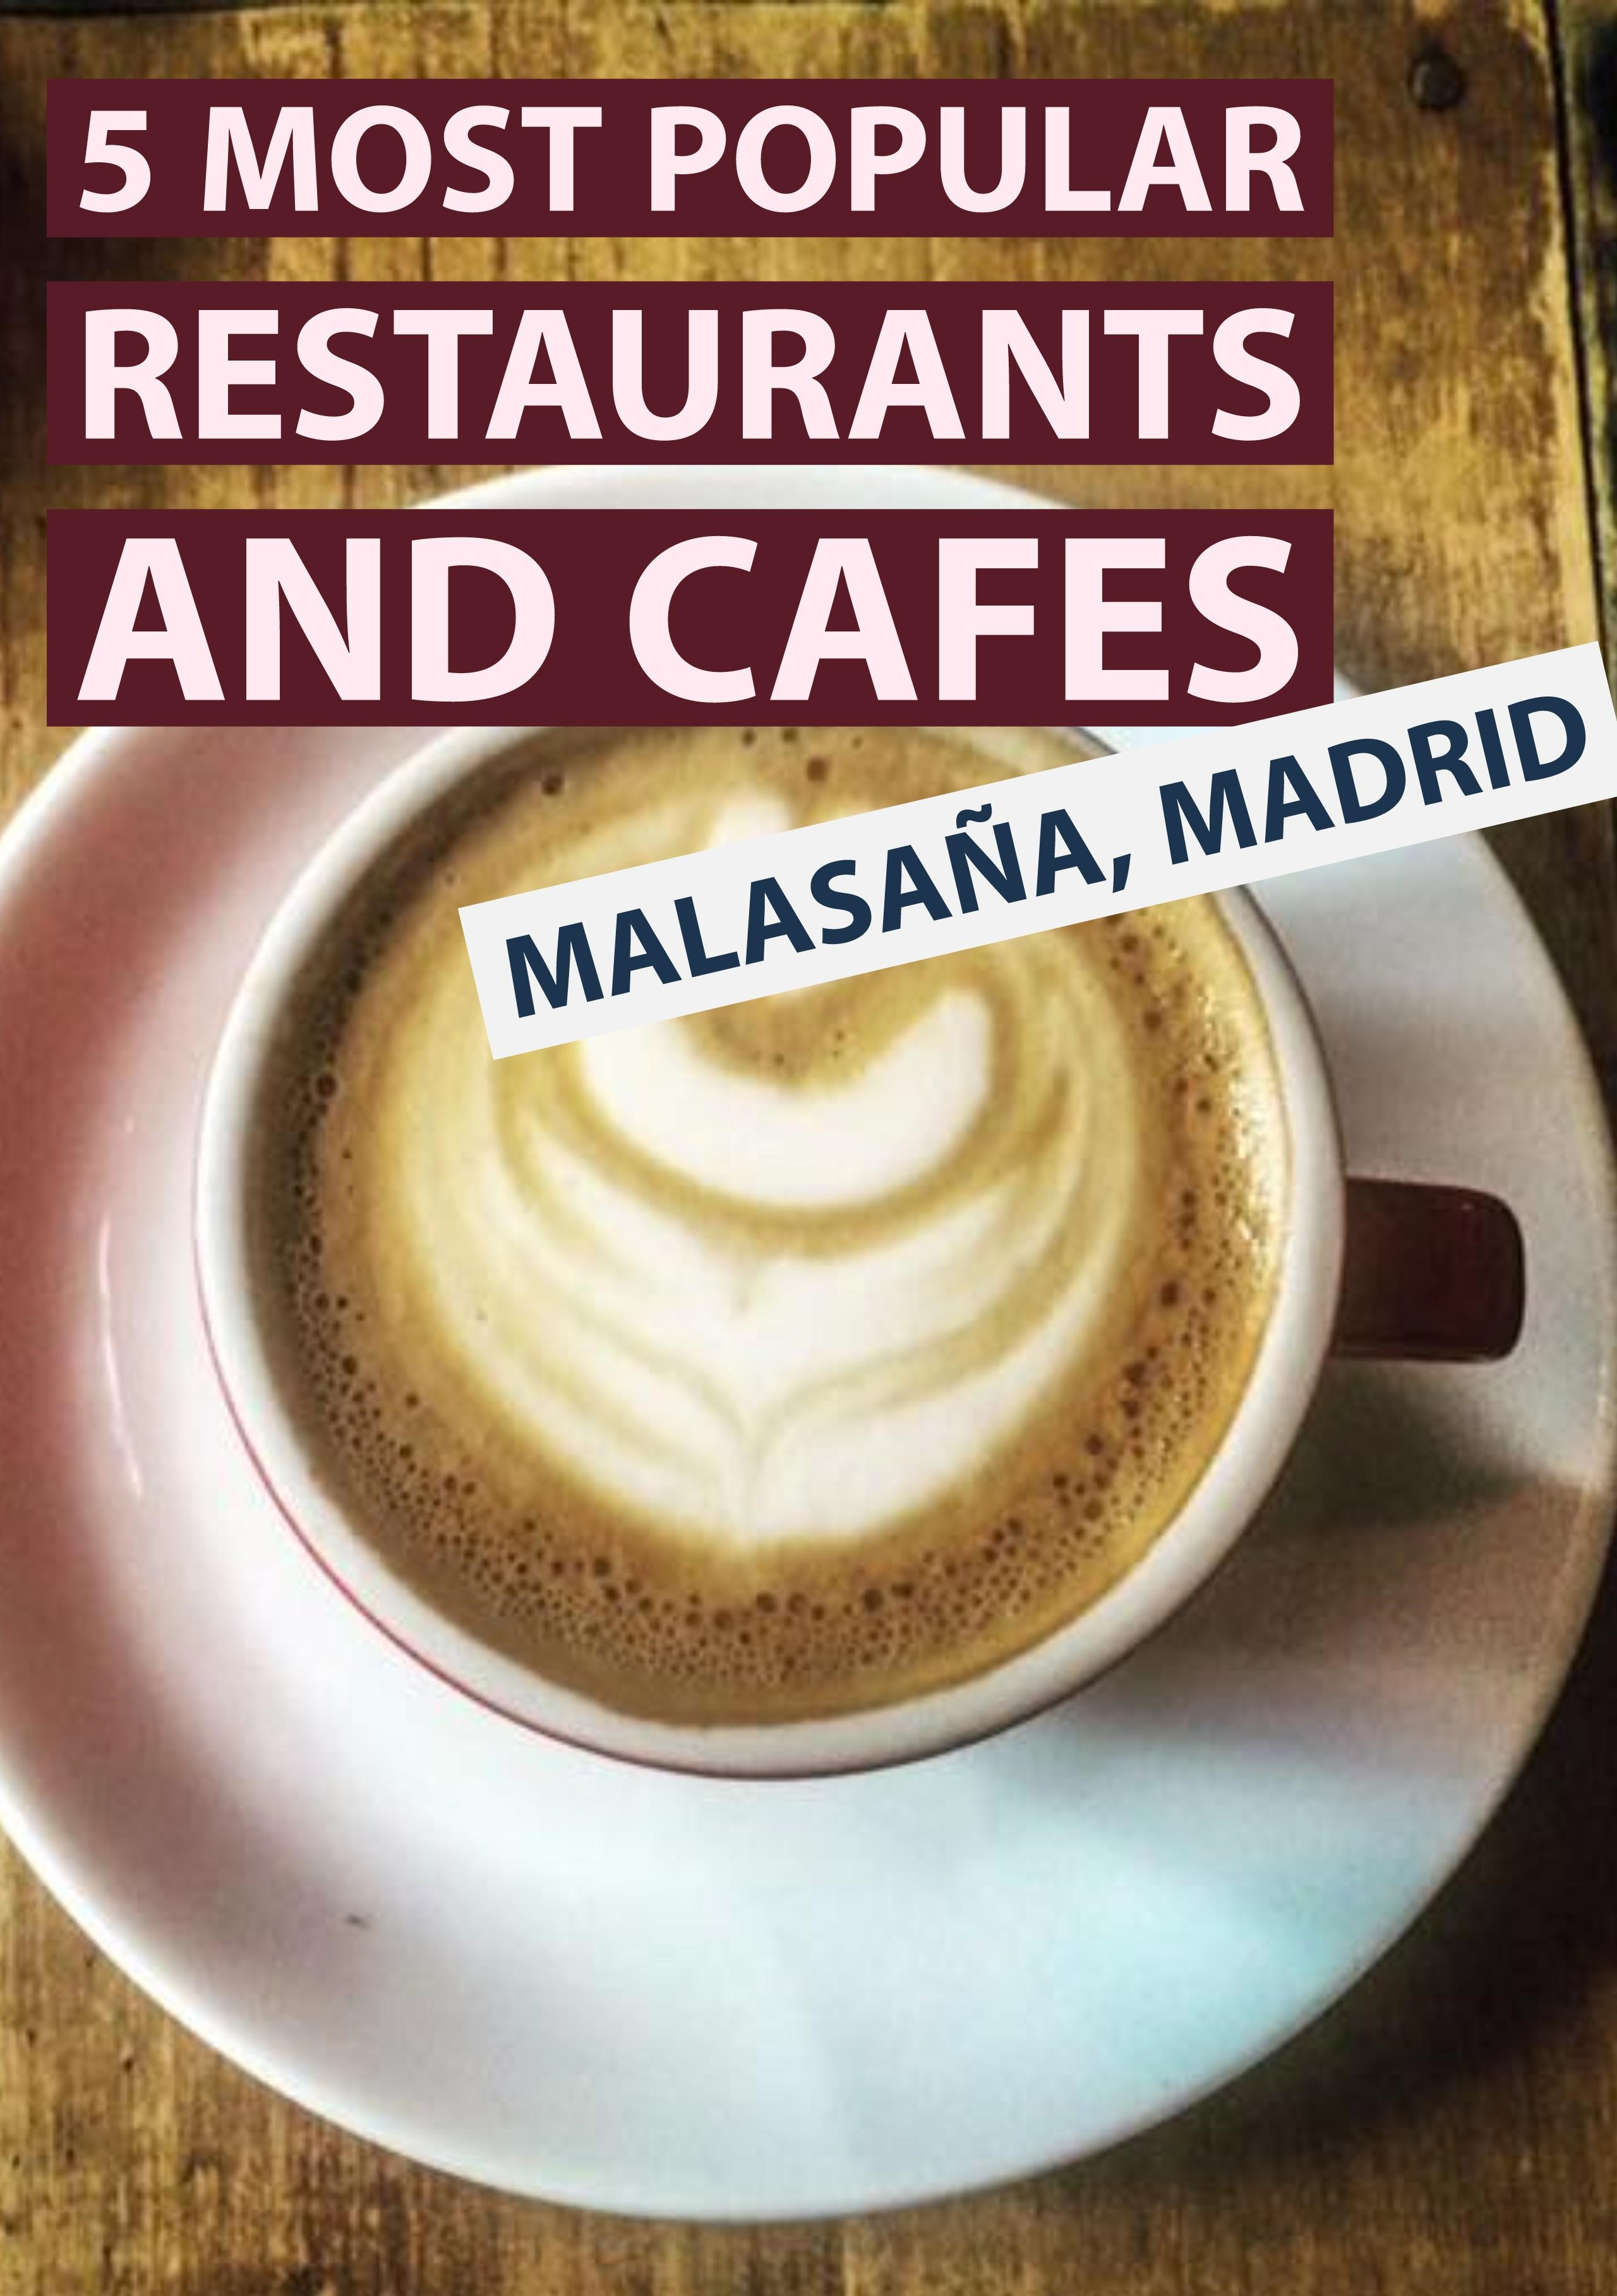 Popular cafes and restaurants in Malasaña